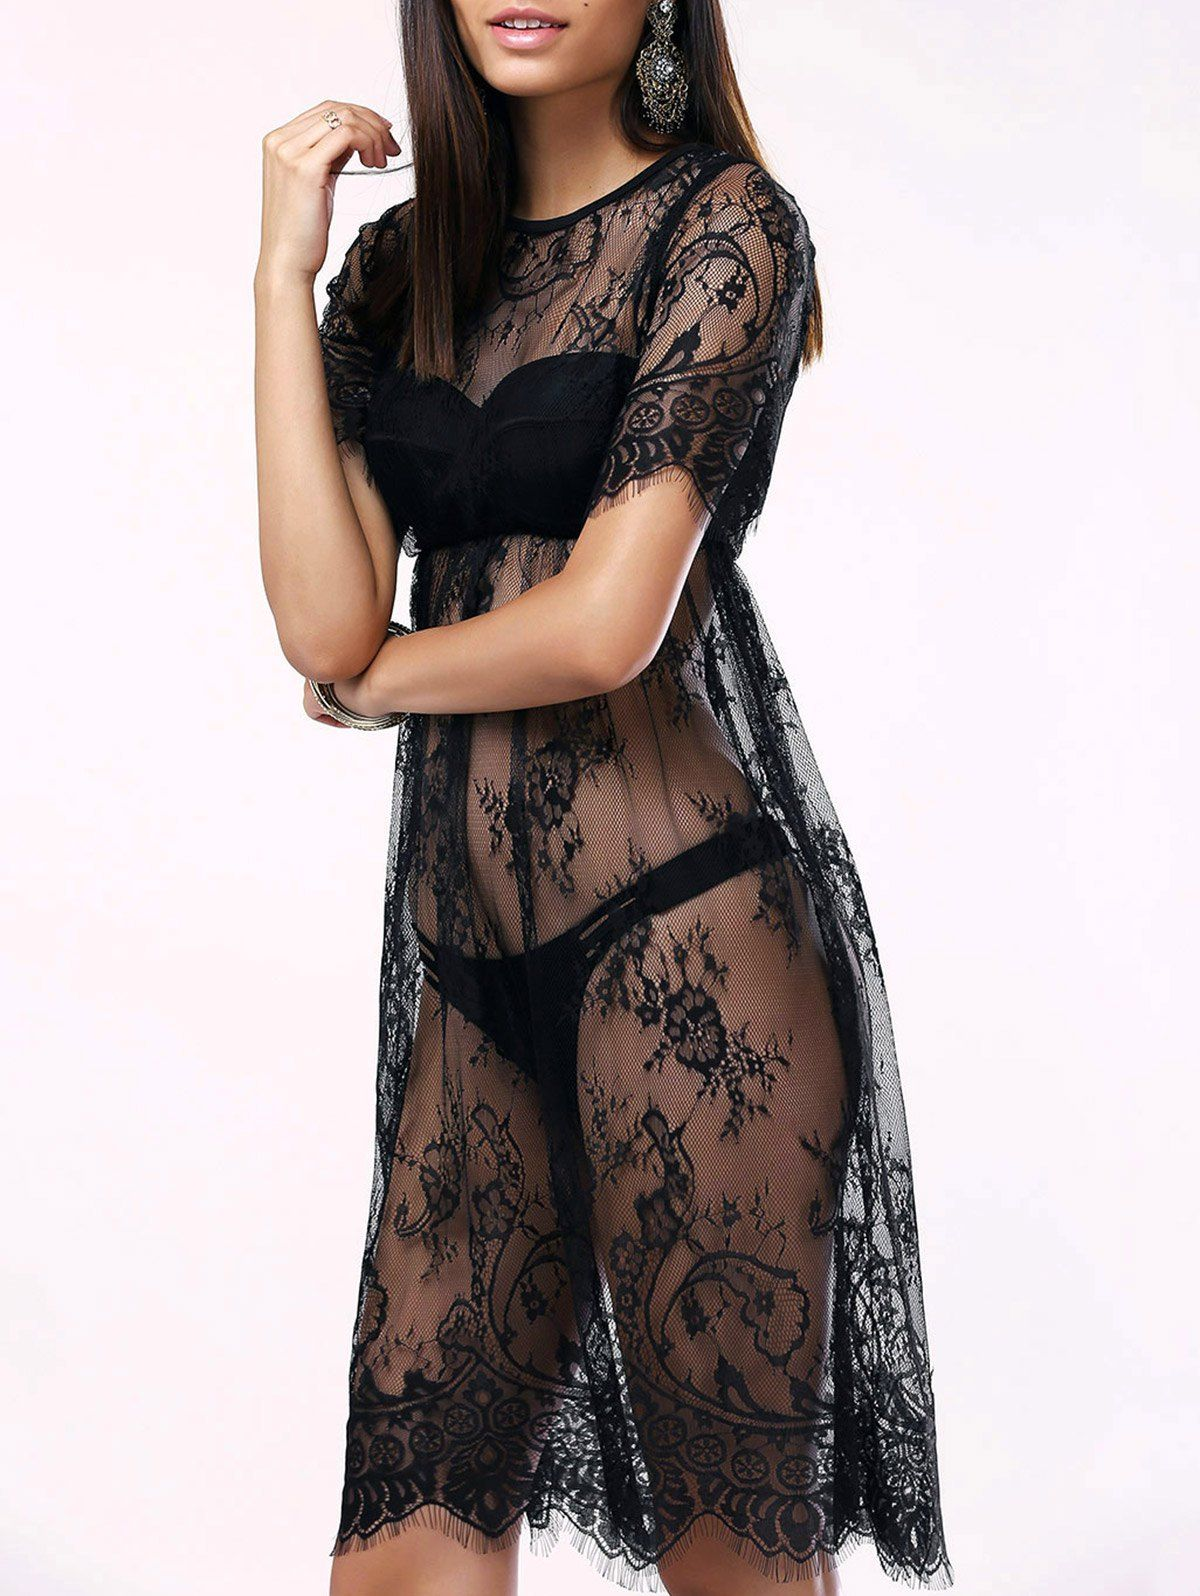 Cover-Ups & Kaftans | Black Alluring See-Through Lace Cover-Up For Women - Gamiss